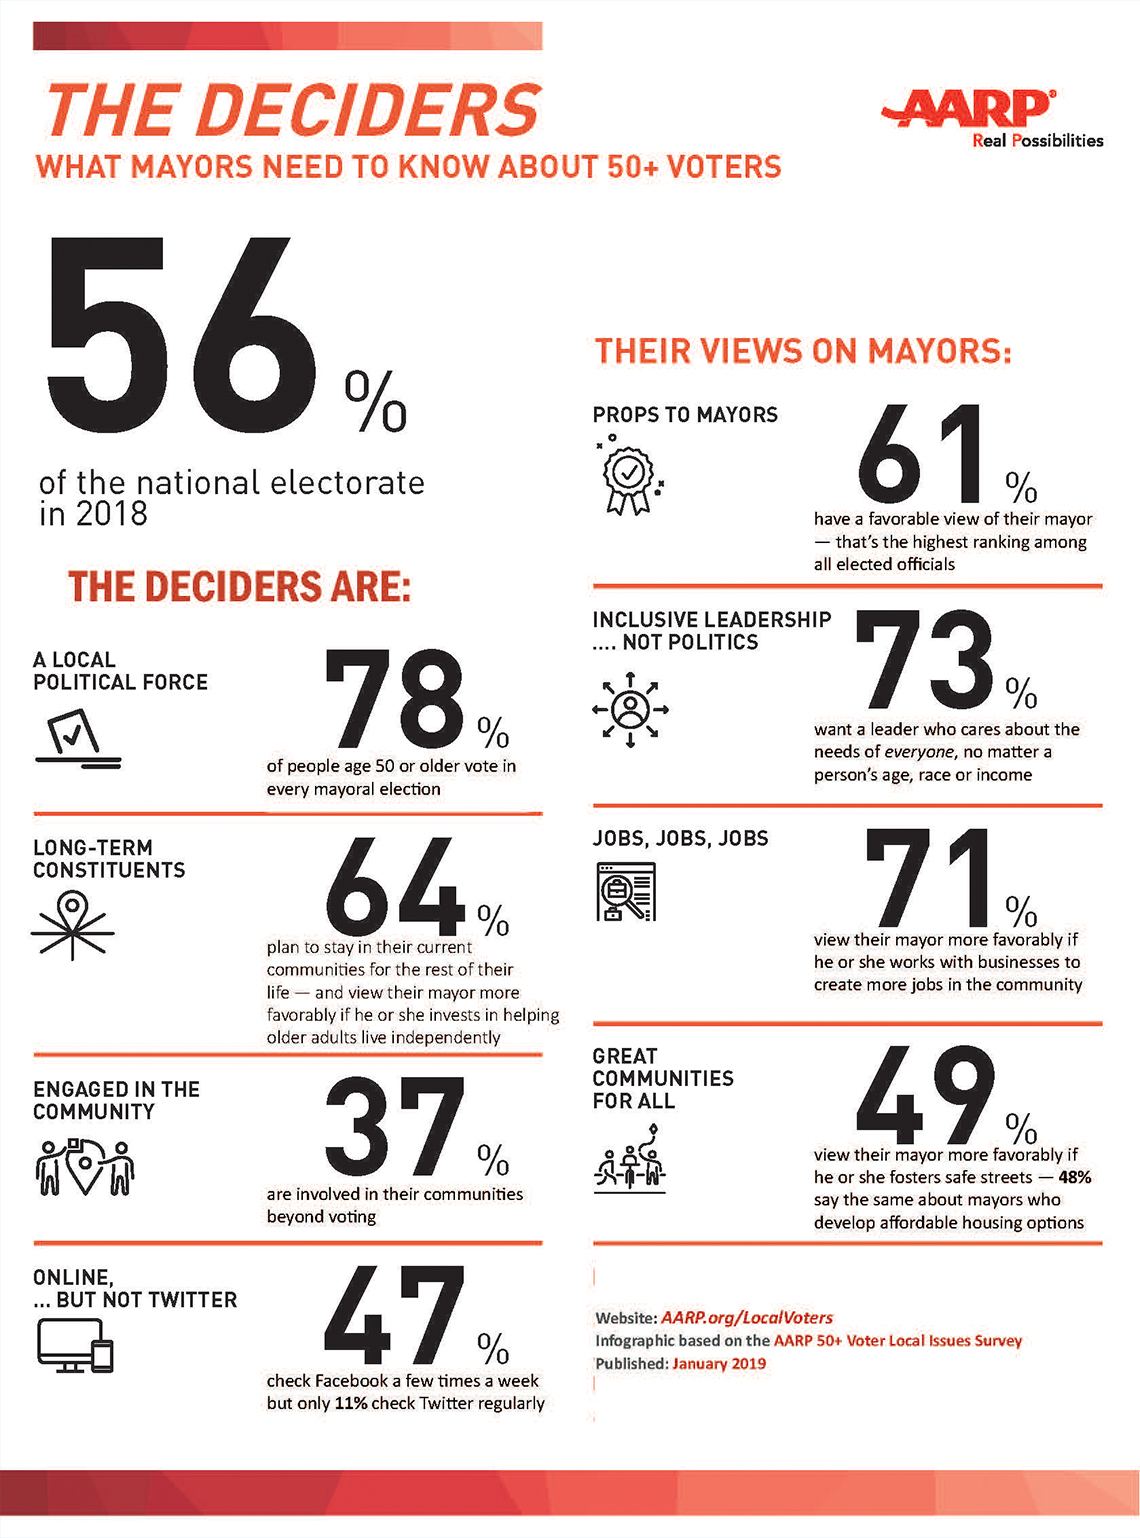 AARP 50+ Voter Local Issues Survey